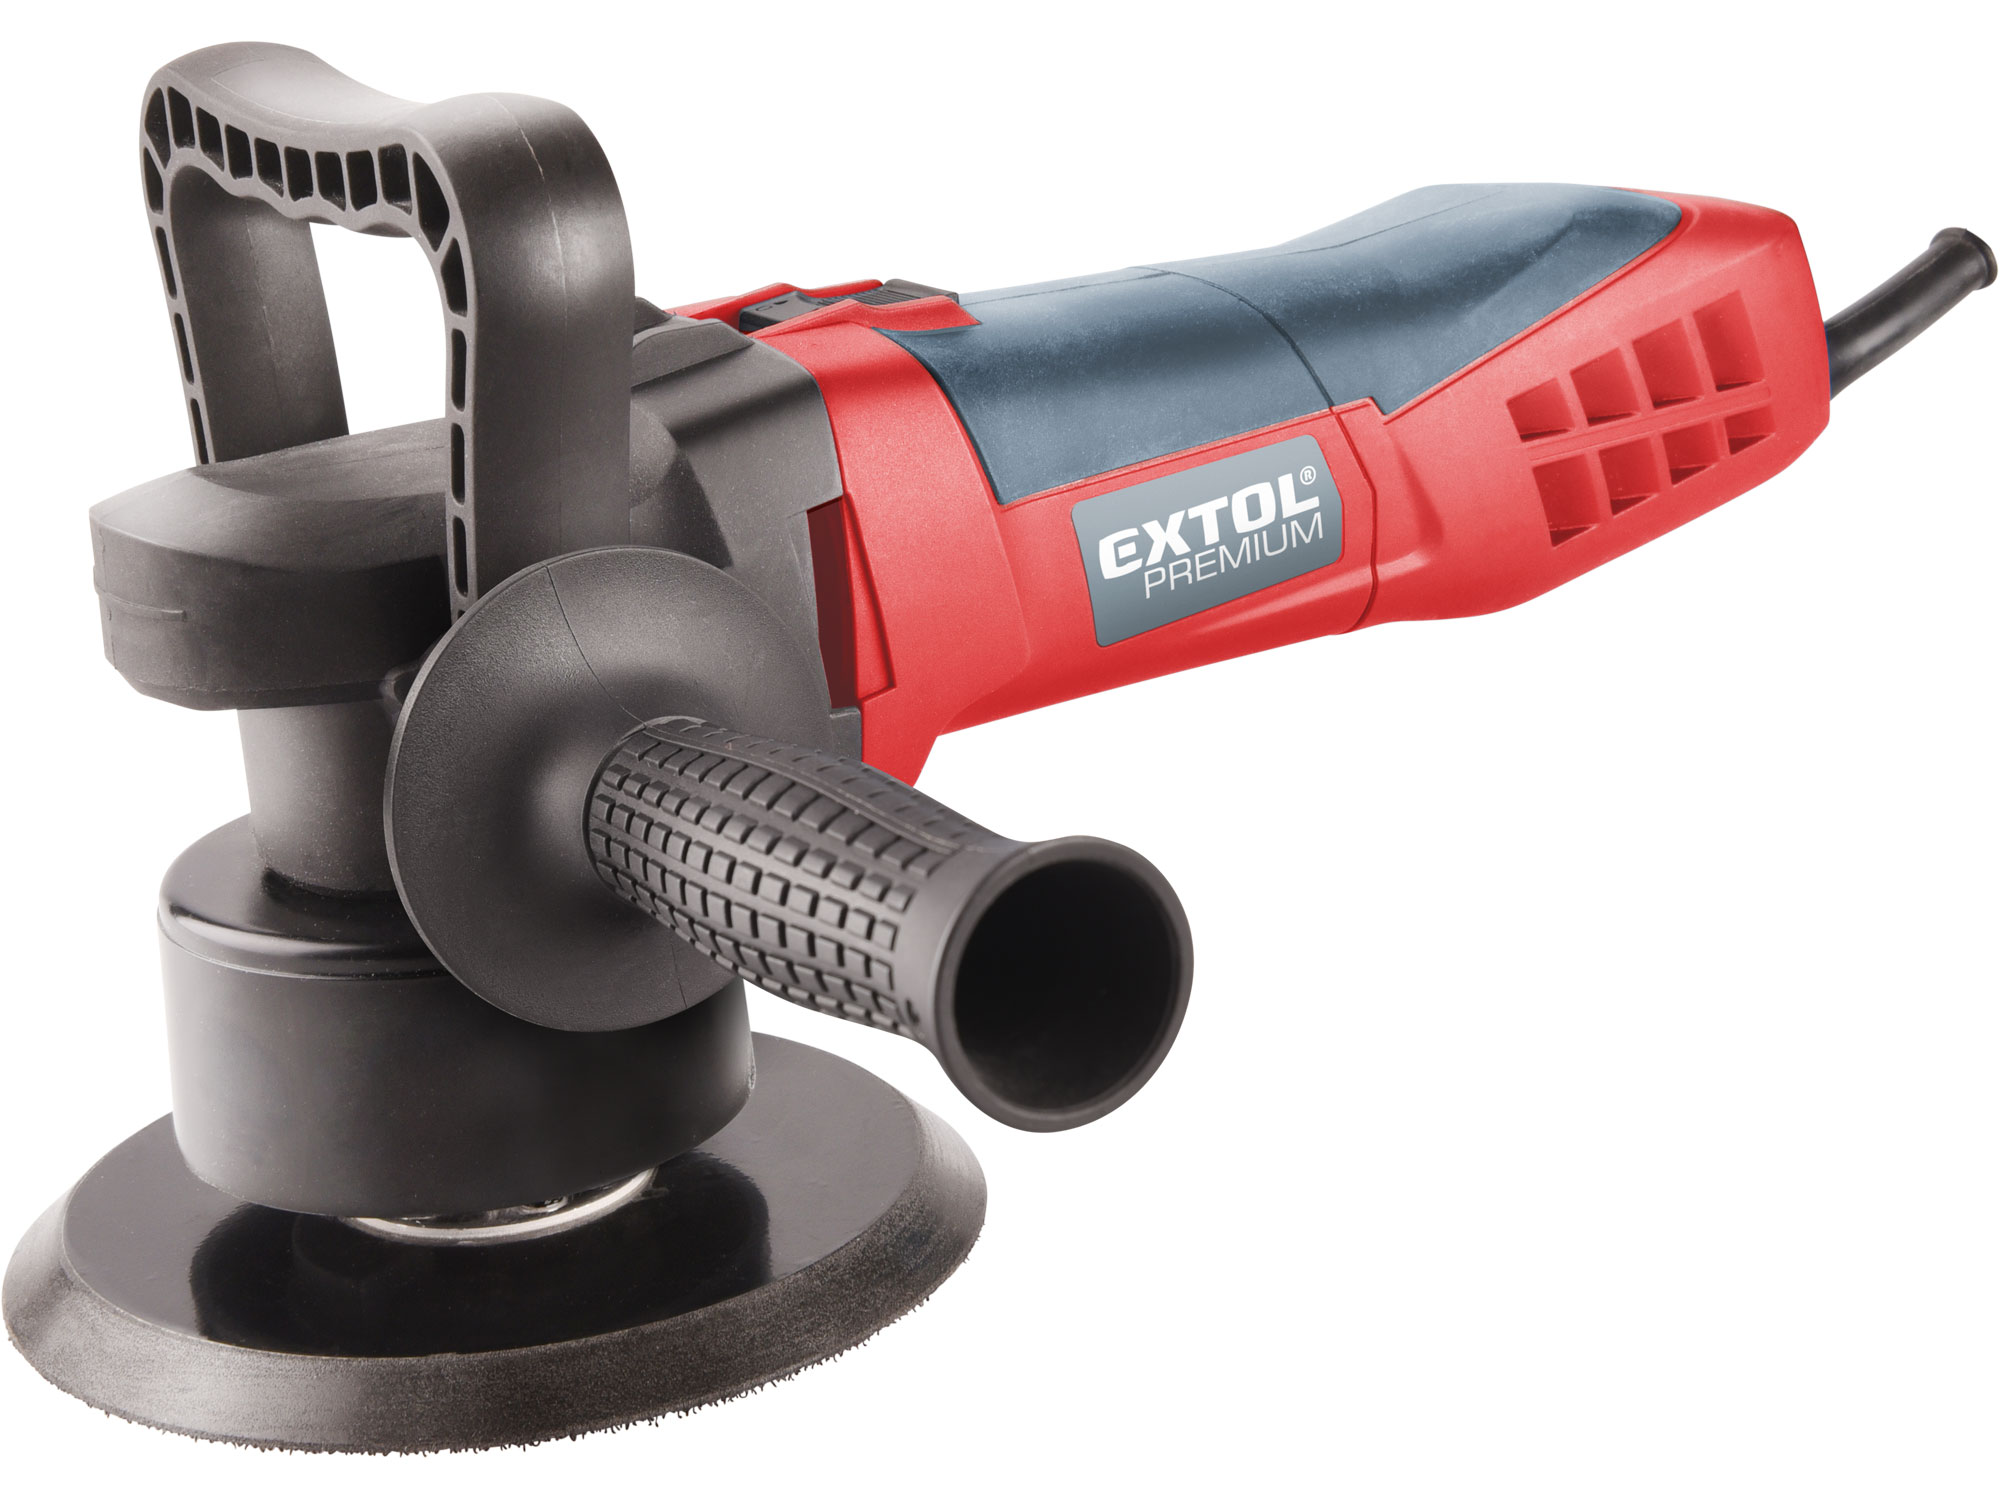 dual-action multi-functional polisher